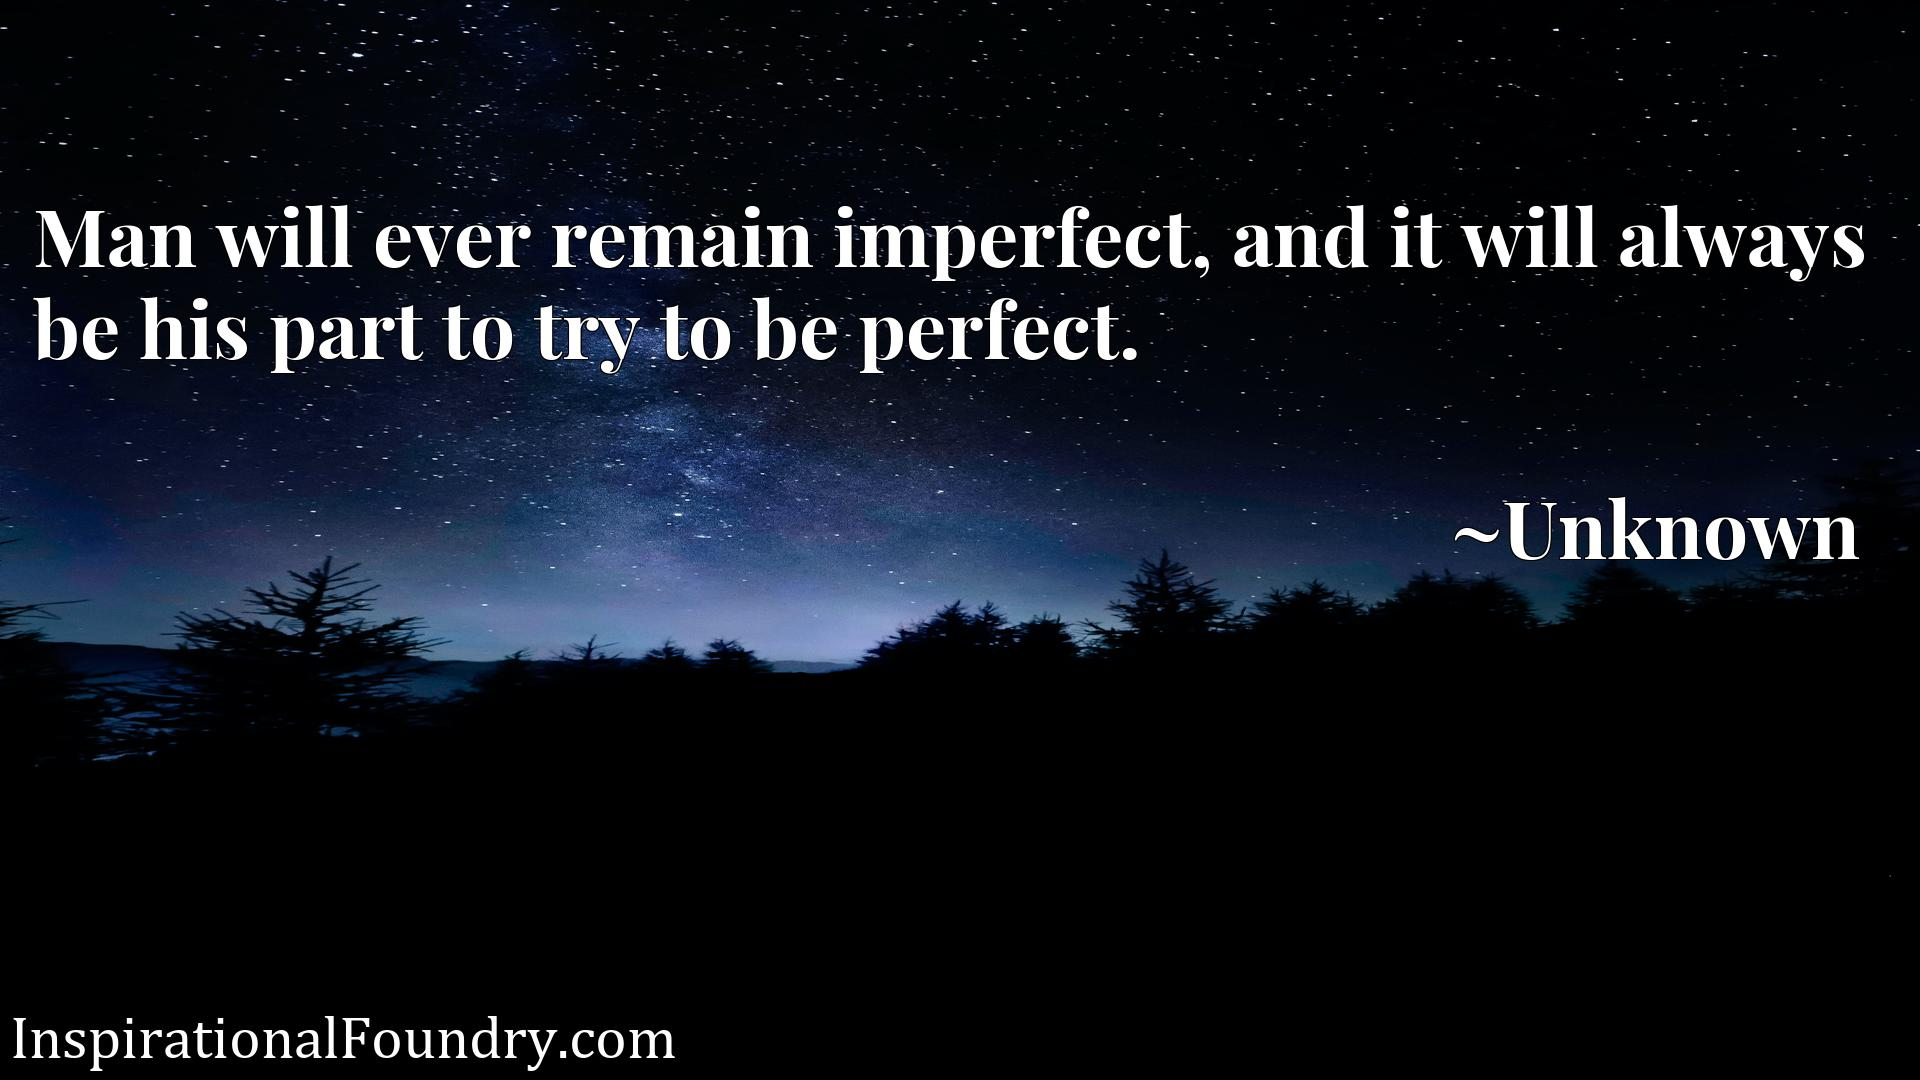 Quote Picture :Man will ever remain imperfect, and it will always be his part to try to be perfect.